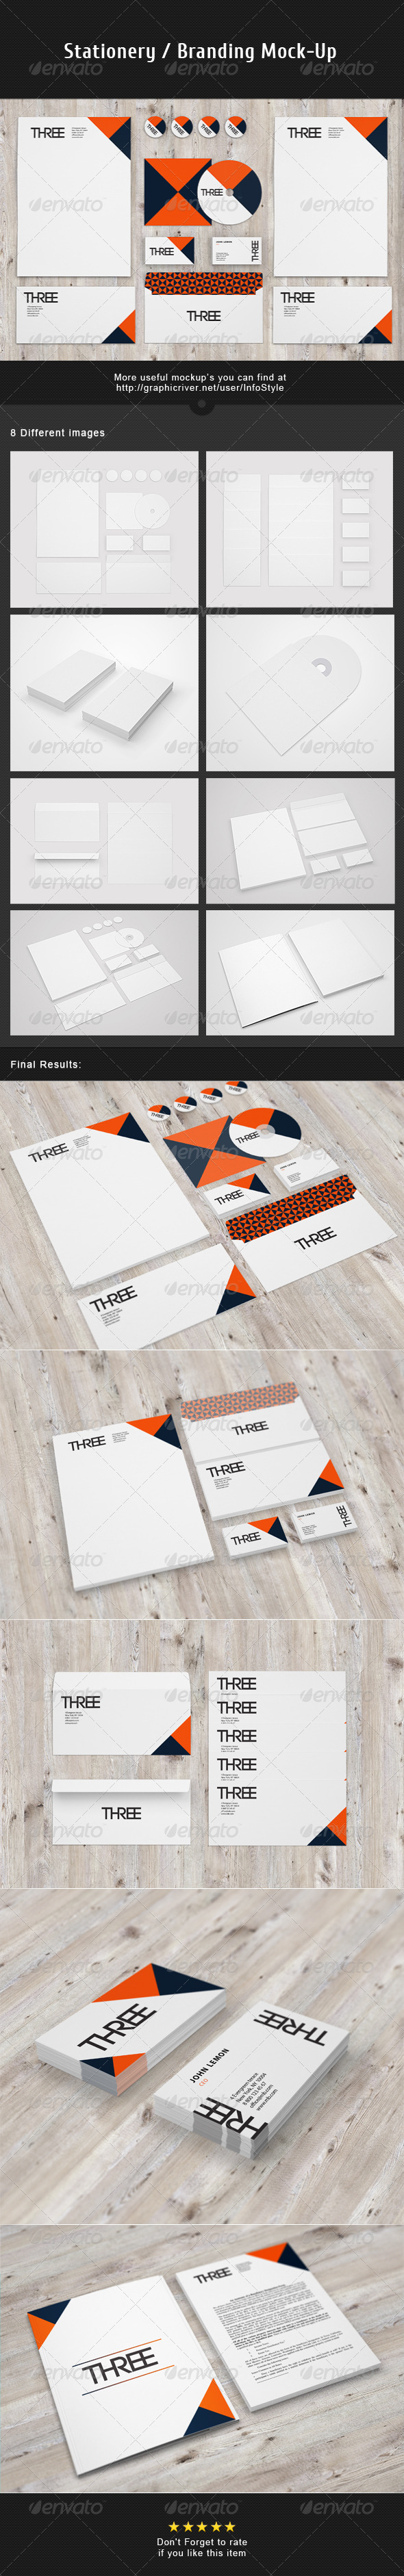 GraphicRiver Stationery Branding Mock-Up Vol.3 3386684